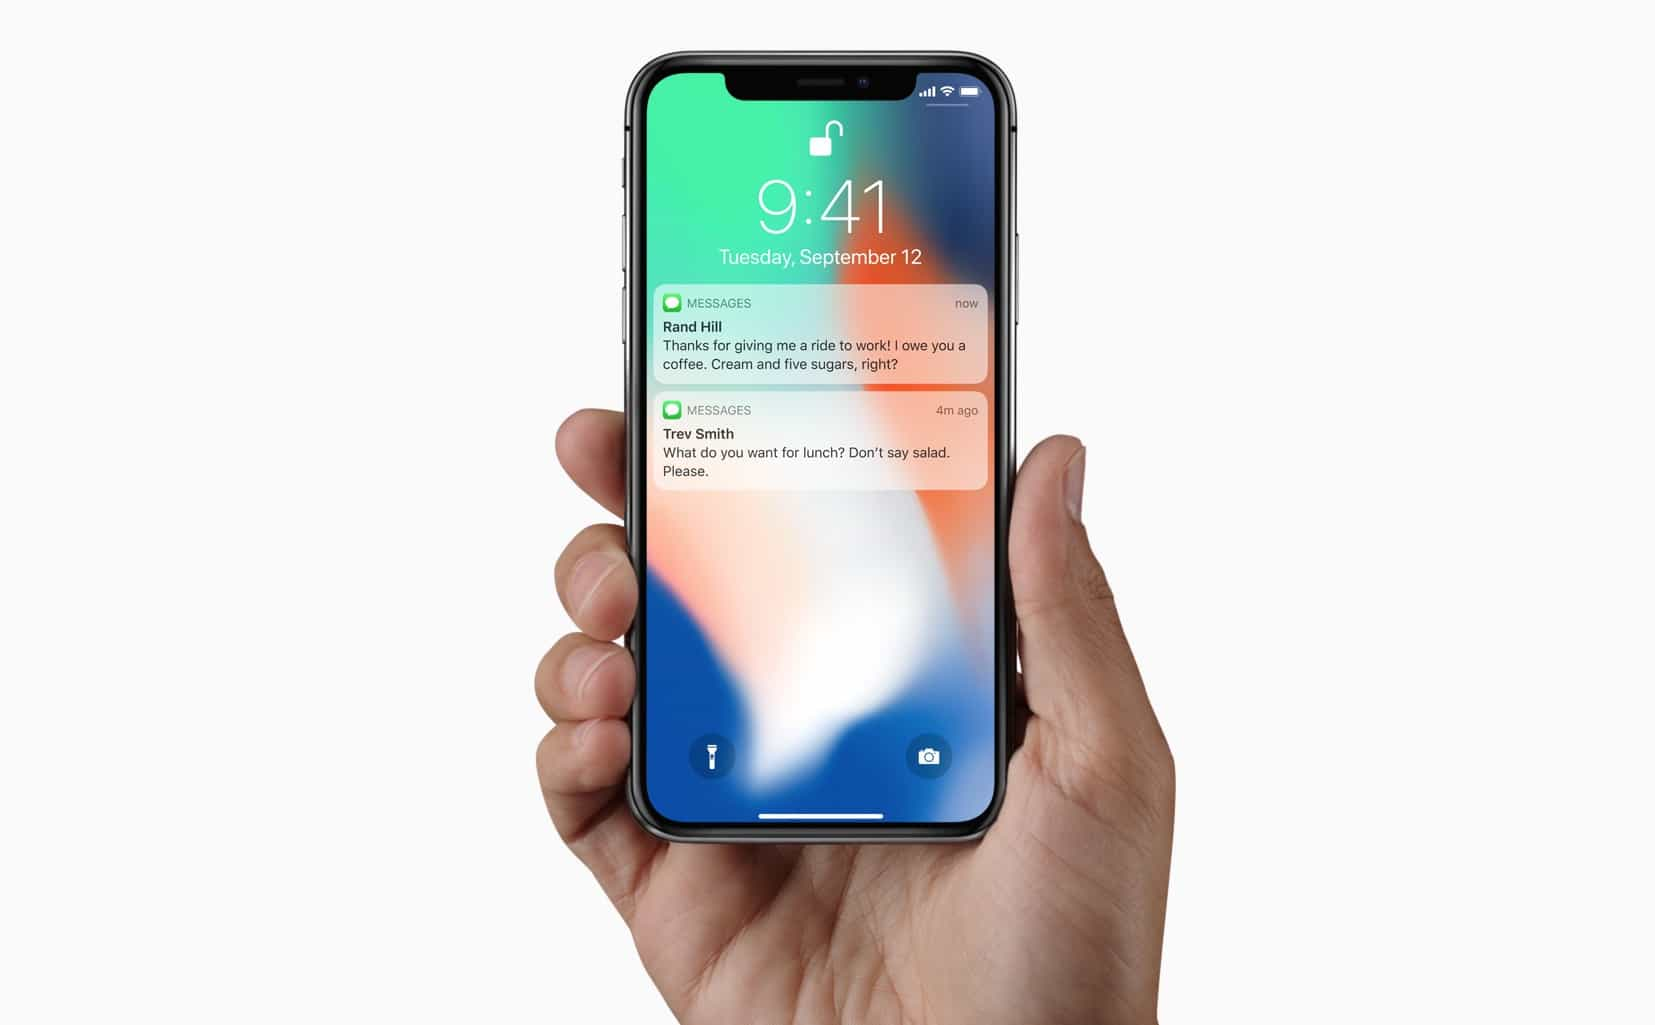 iPhone x notifications